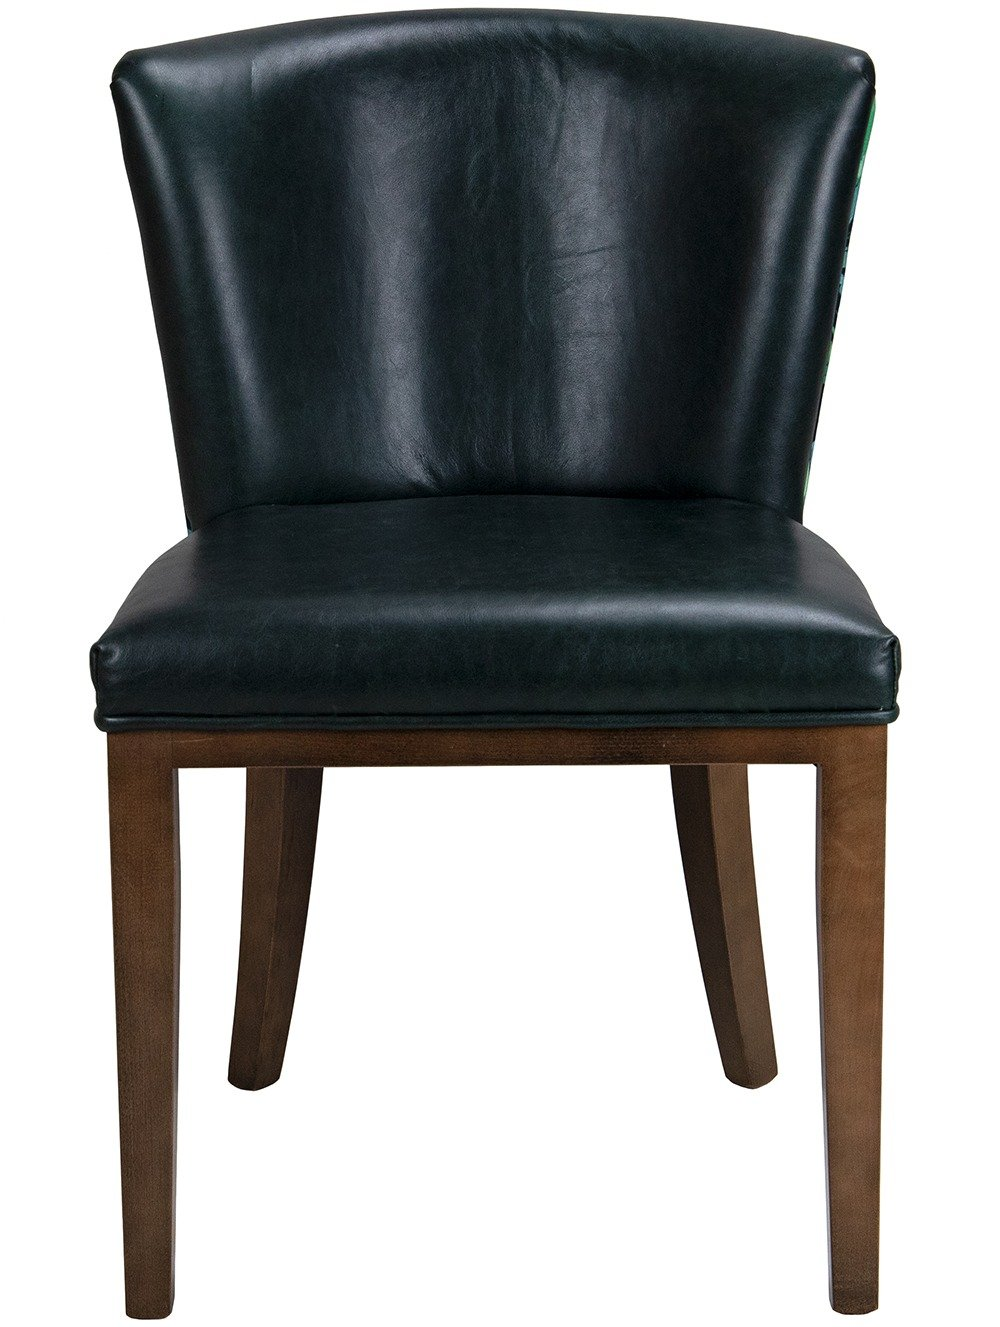 Front view of Harper Side Chair